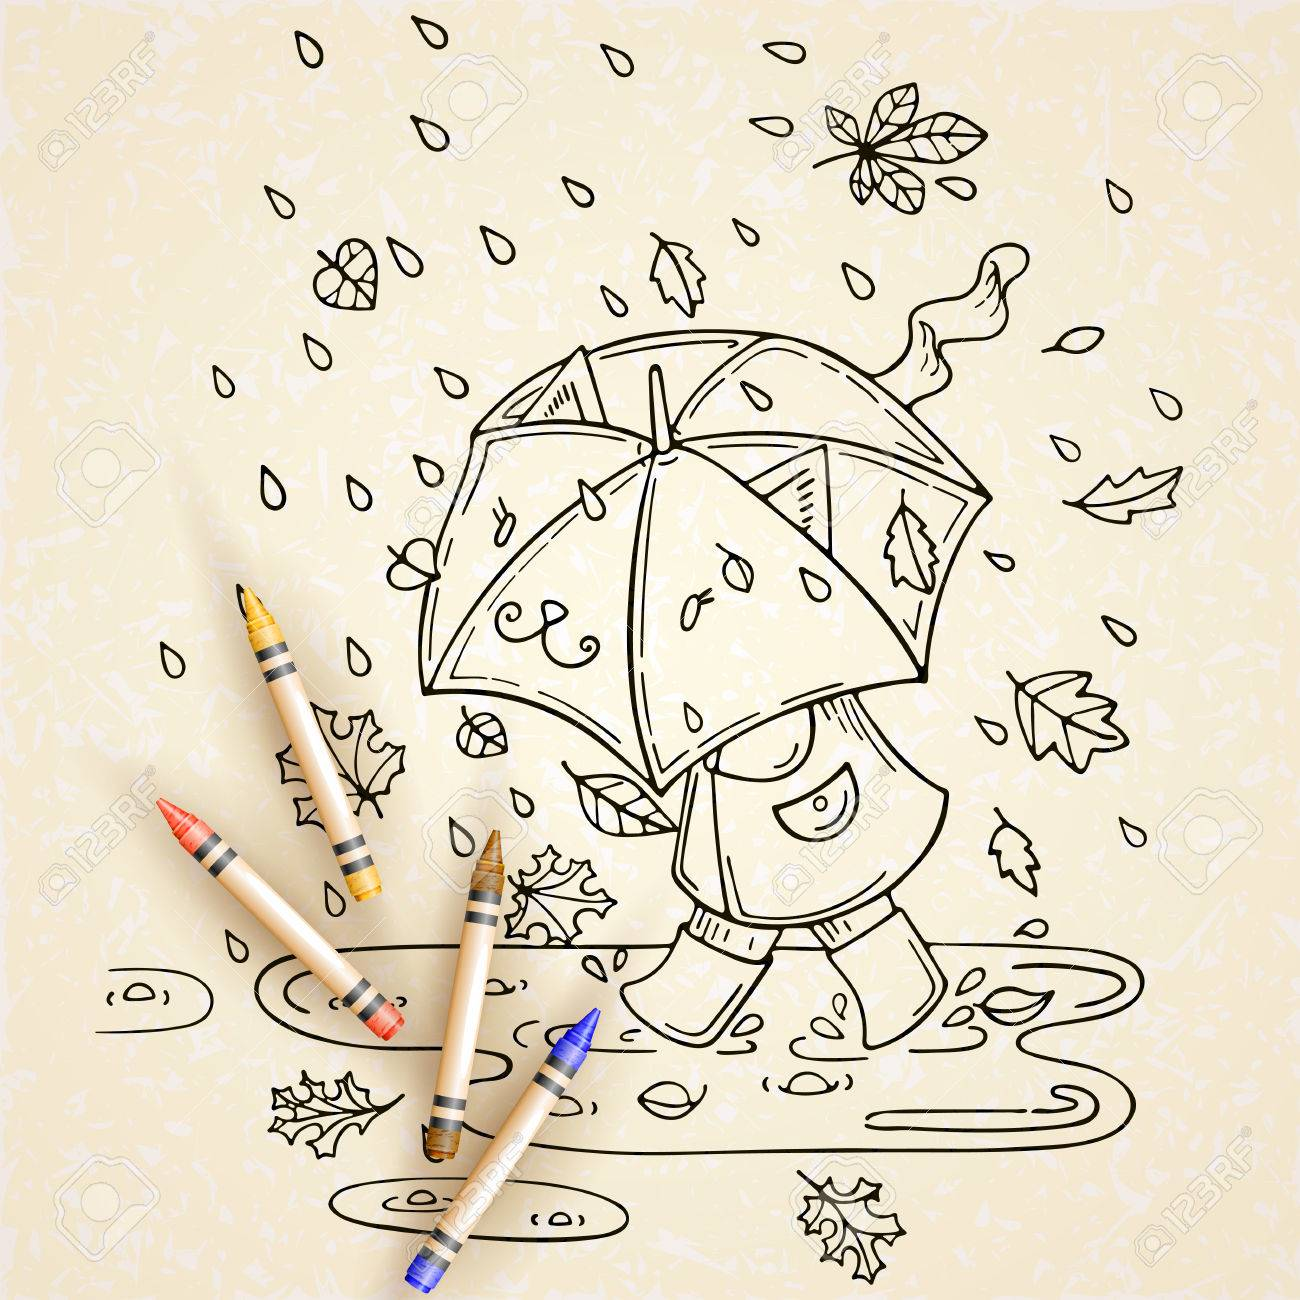 Vector Illustration Of Cute Kid With Umbrella In Rainy Season Royalty Free Cliparts Vectors And Stock Illustration Image 50226762